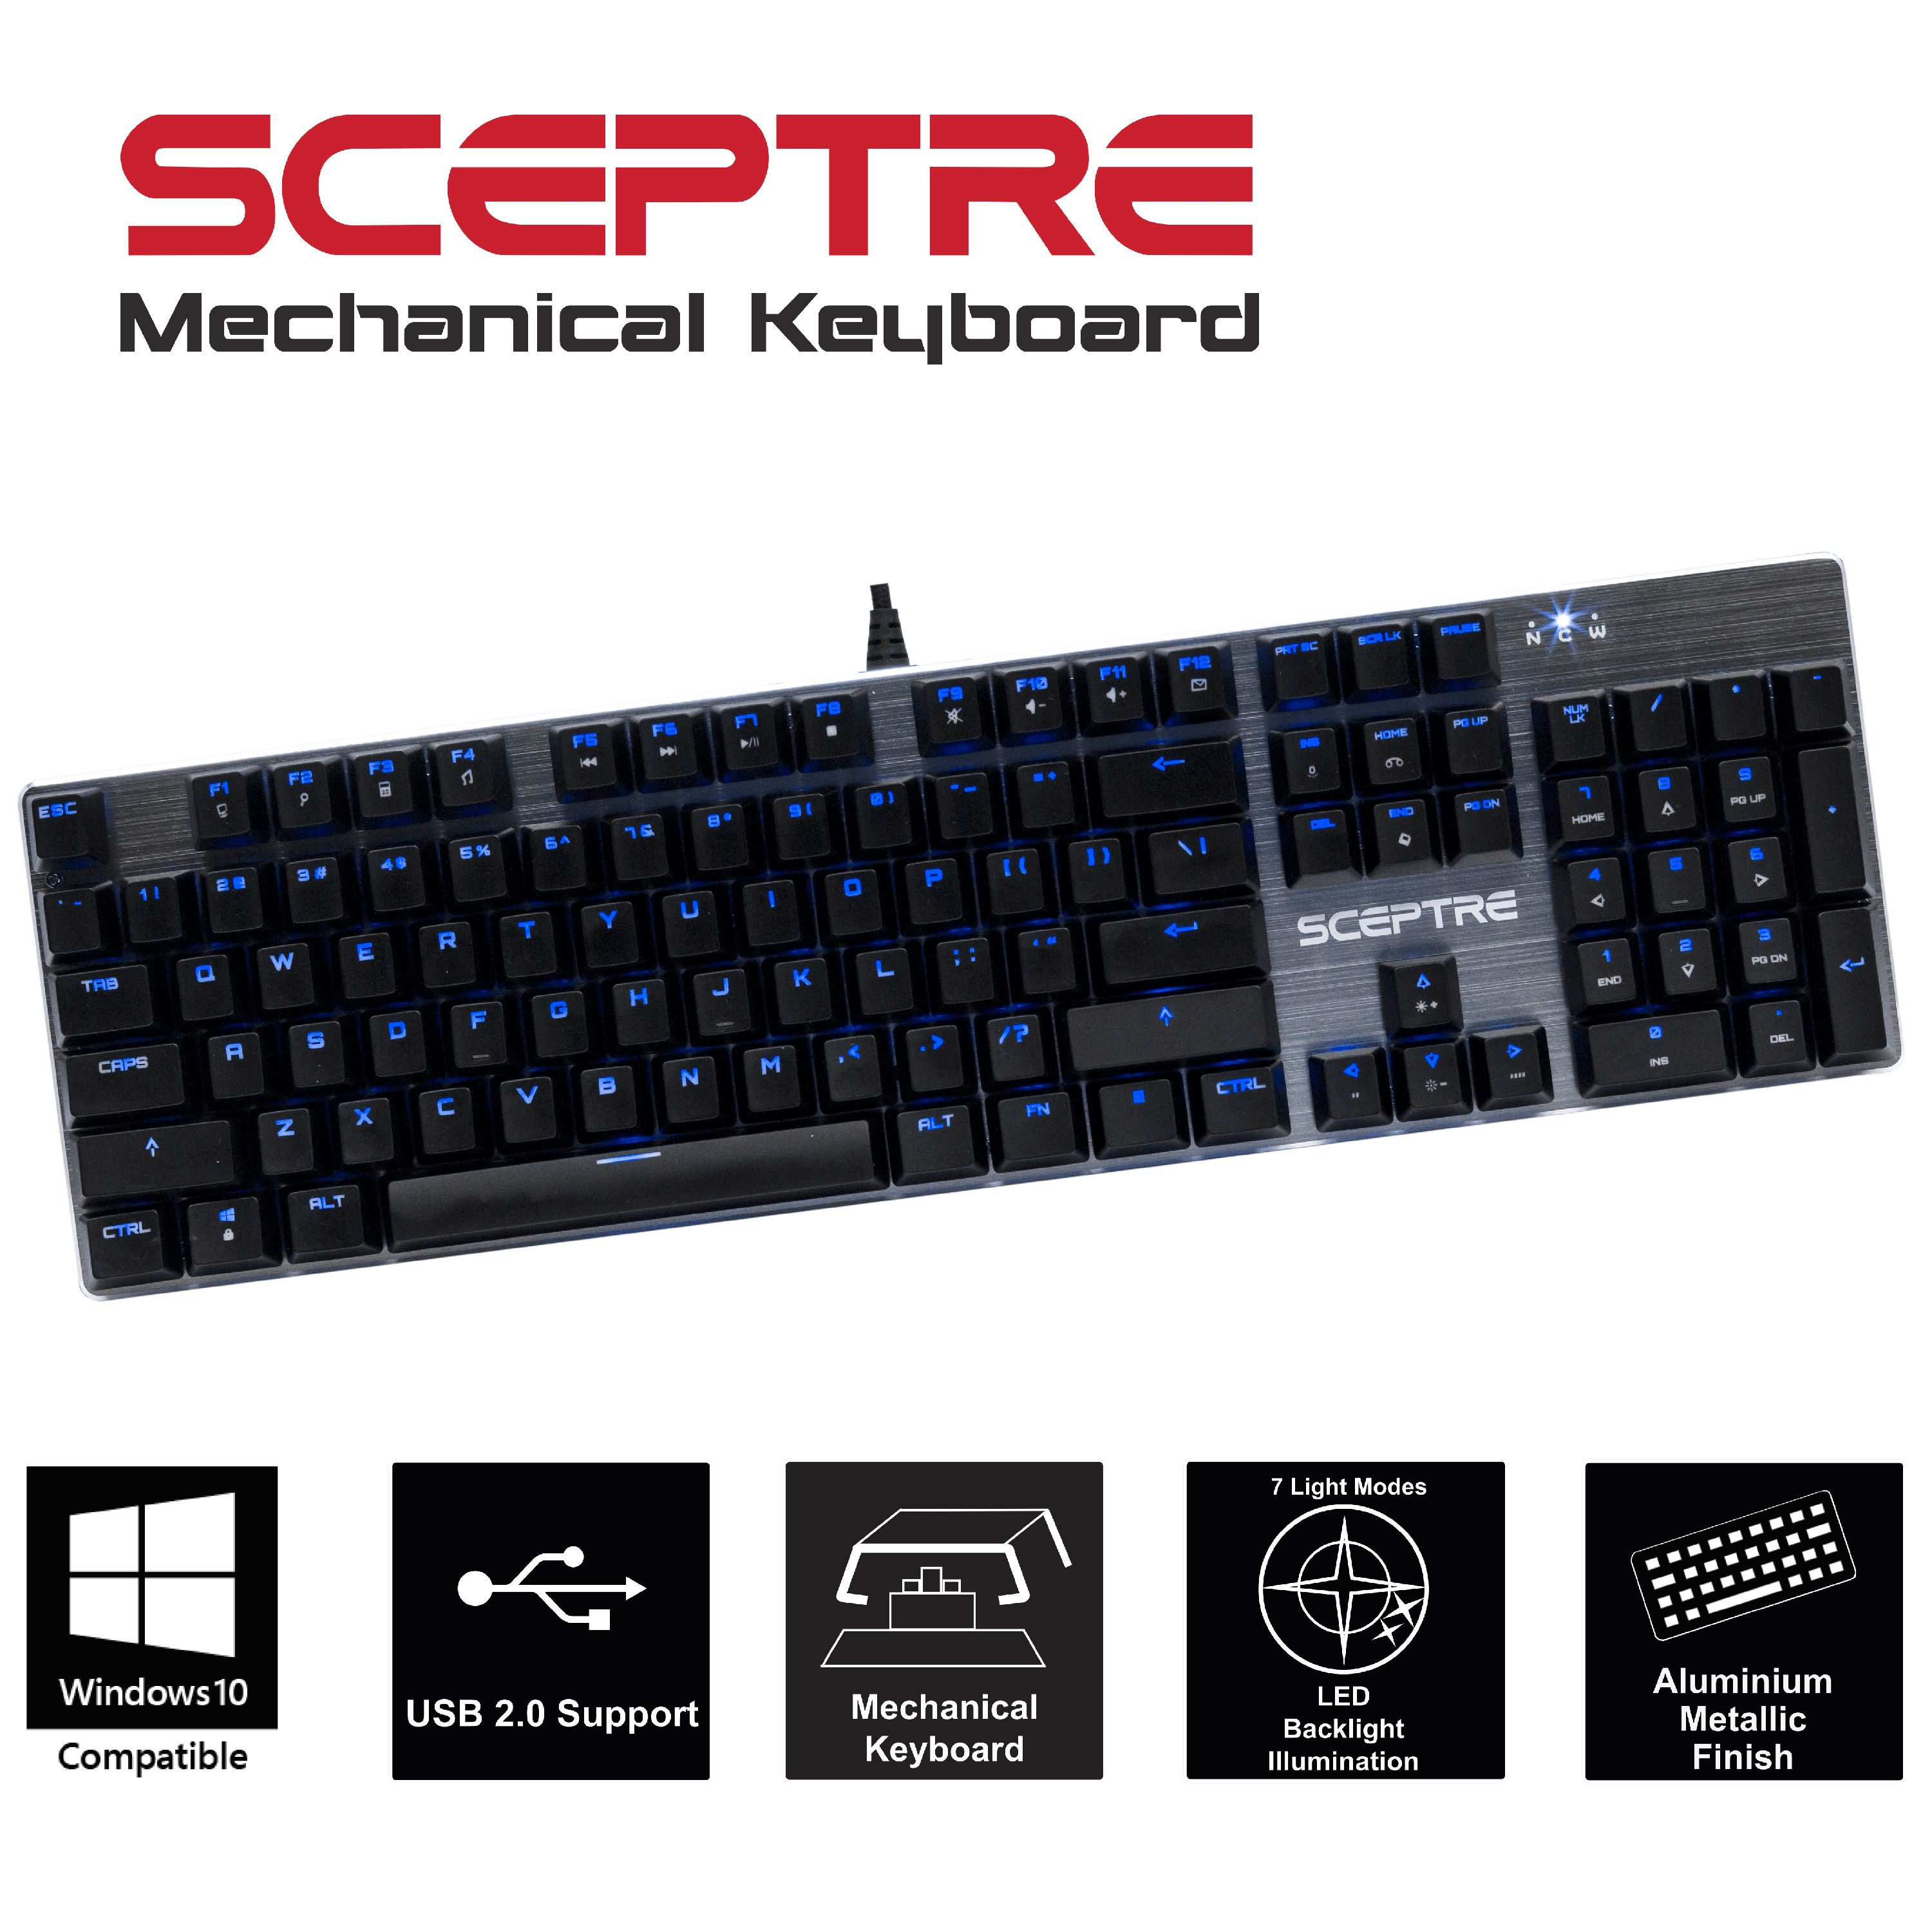 Sceptre SK-604 104 Key USB Wired Illuminated Mechanical Gaming Keyboard - Blue Switch - Green LED Backlit